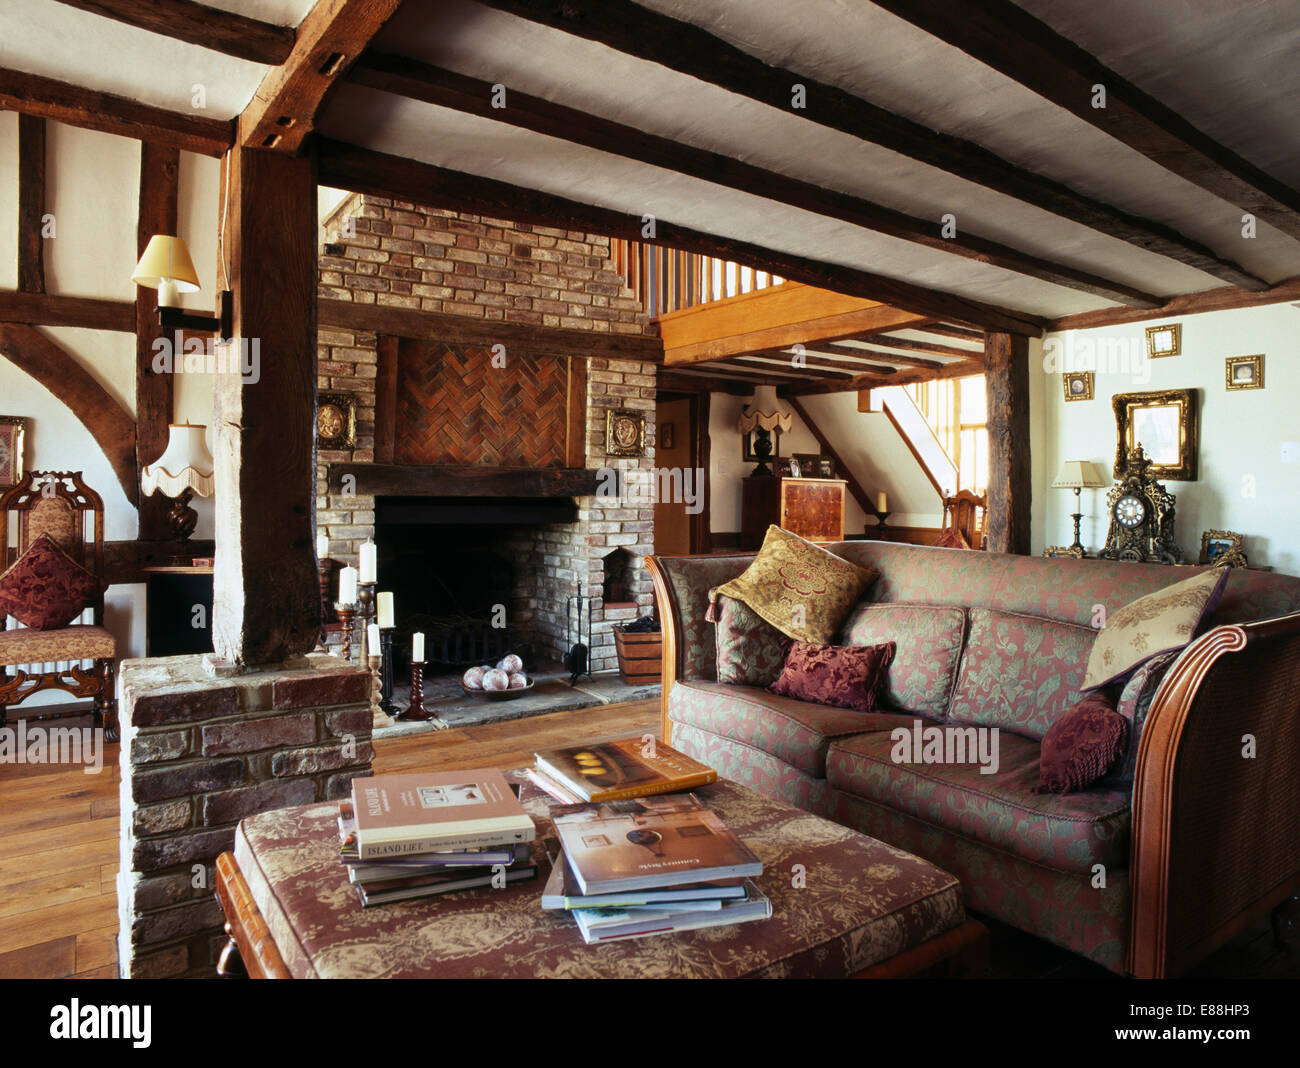 Patterned sofa in living room with brick fireplace and